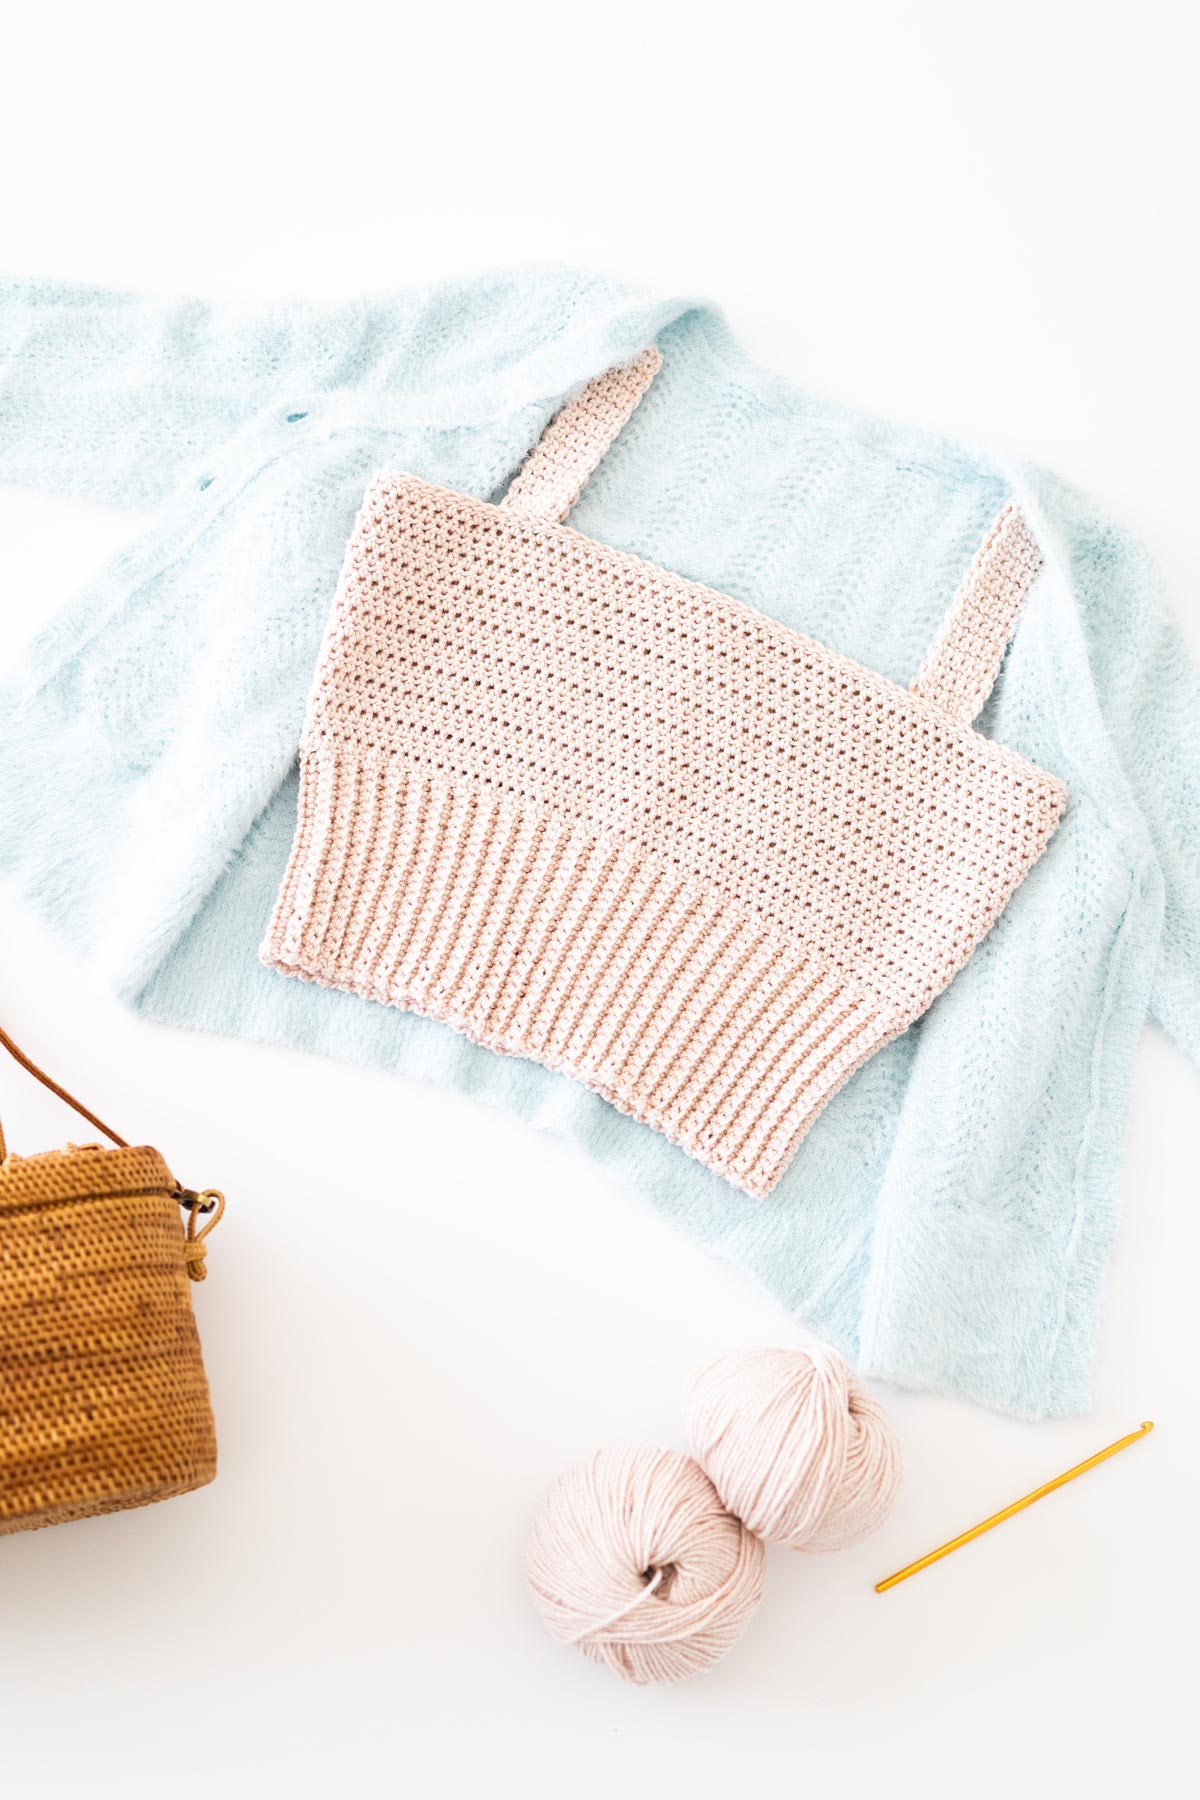 flat lay of summer crochet crop top with a ribbed hem on top of fluffy light blue cardigan with gold 5mm crochet and 2 skeins of yarn